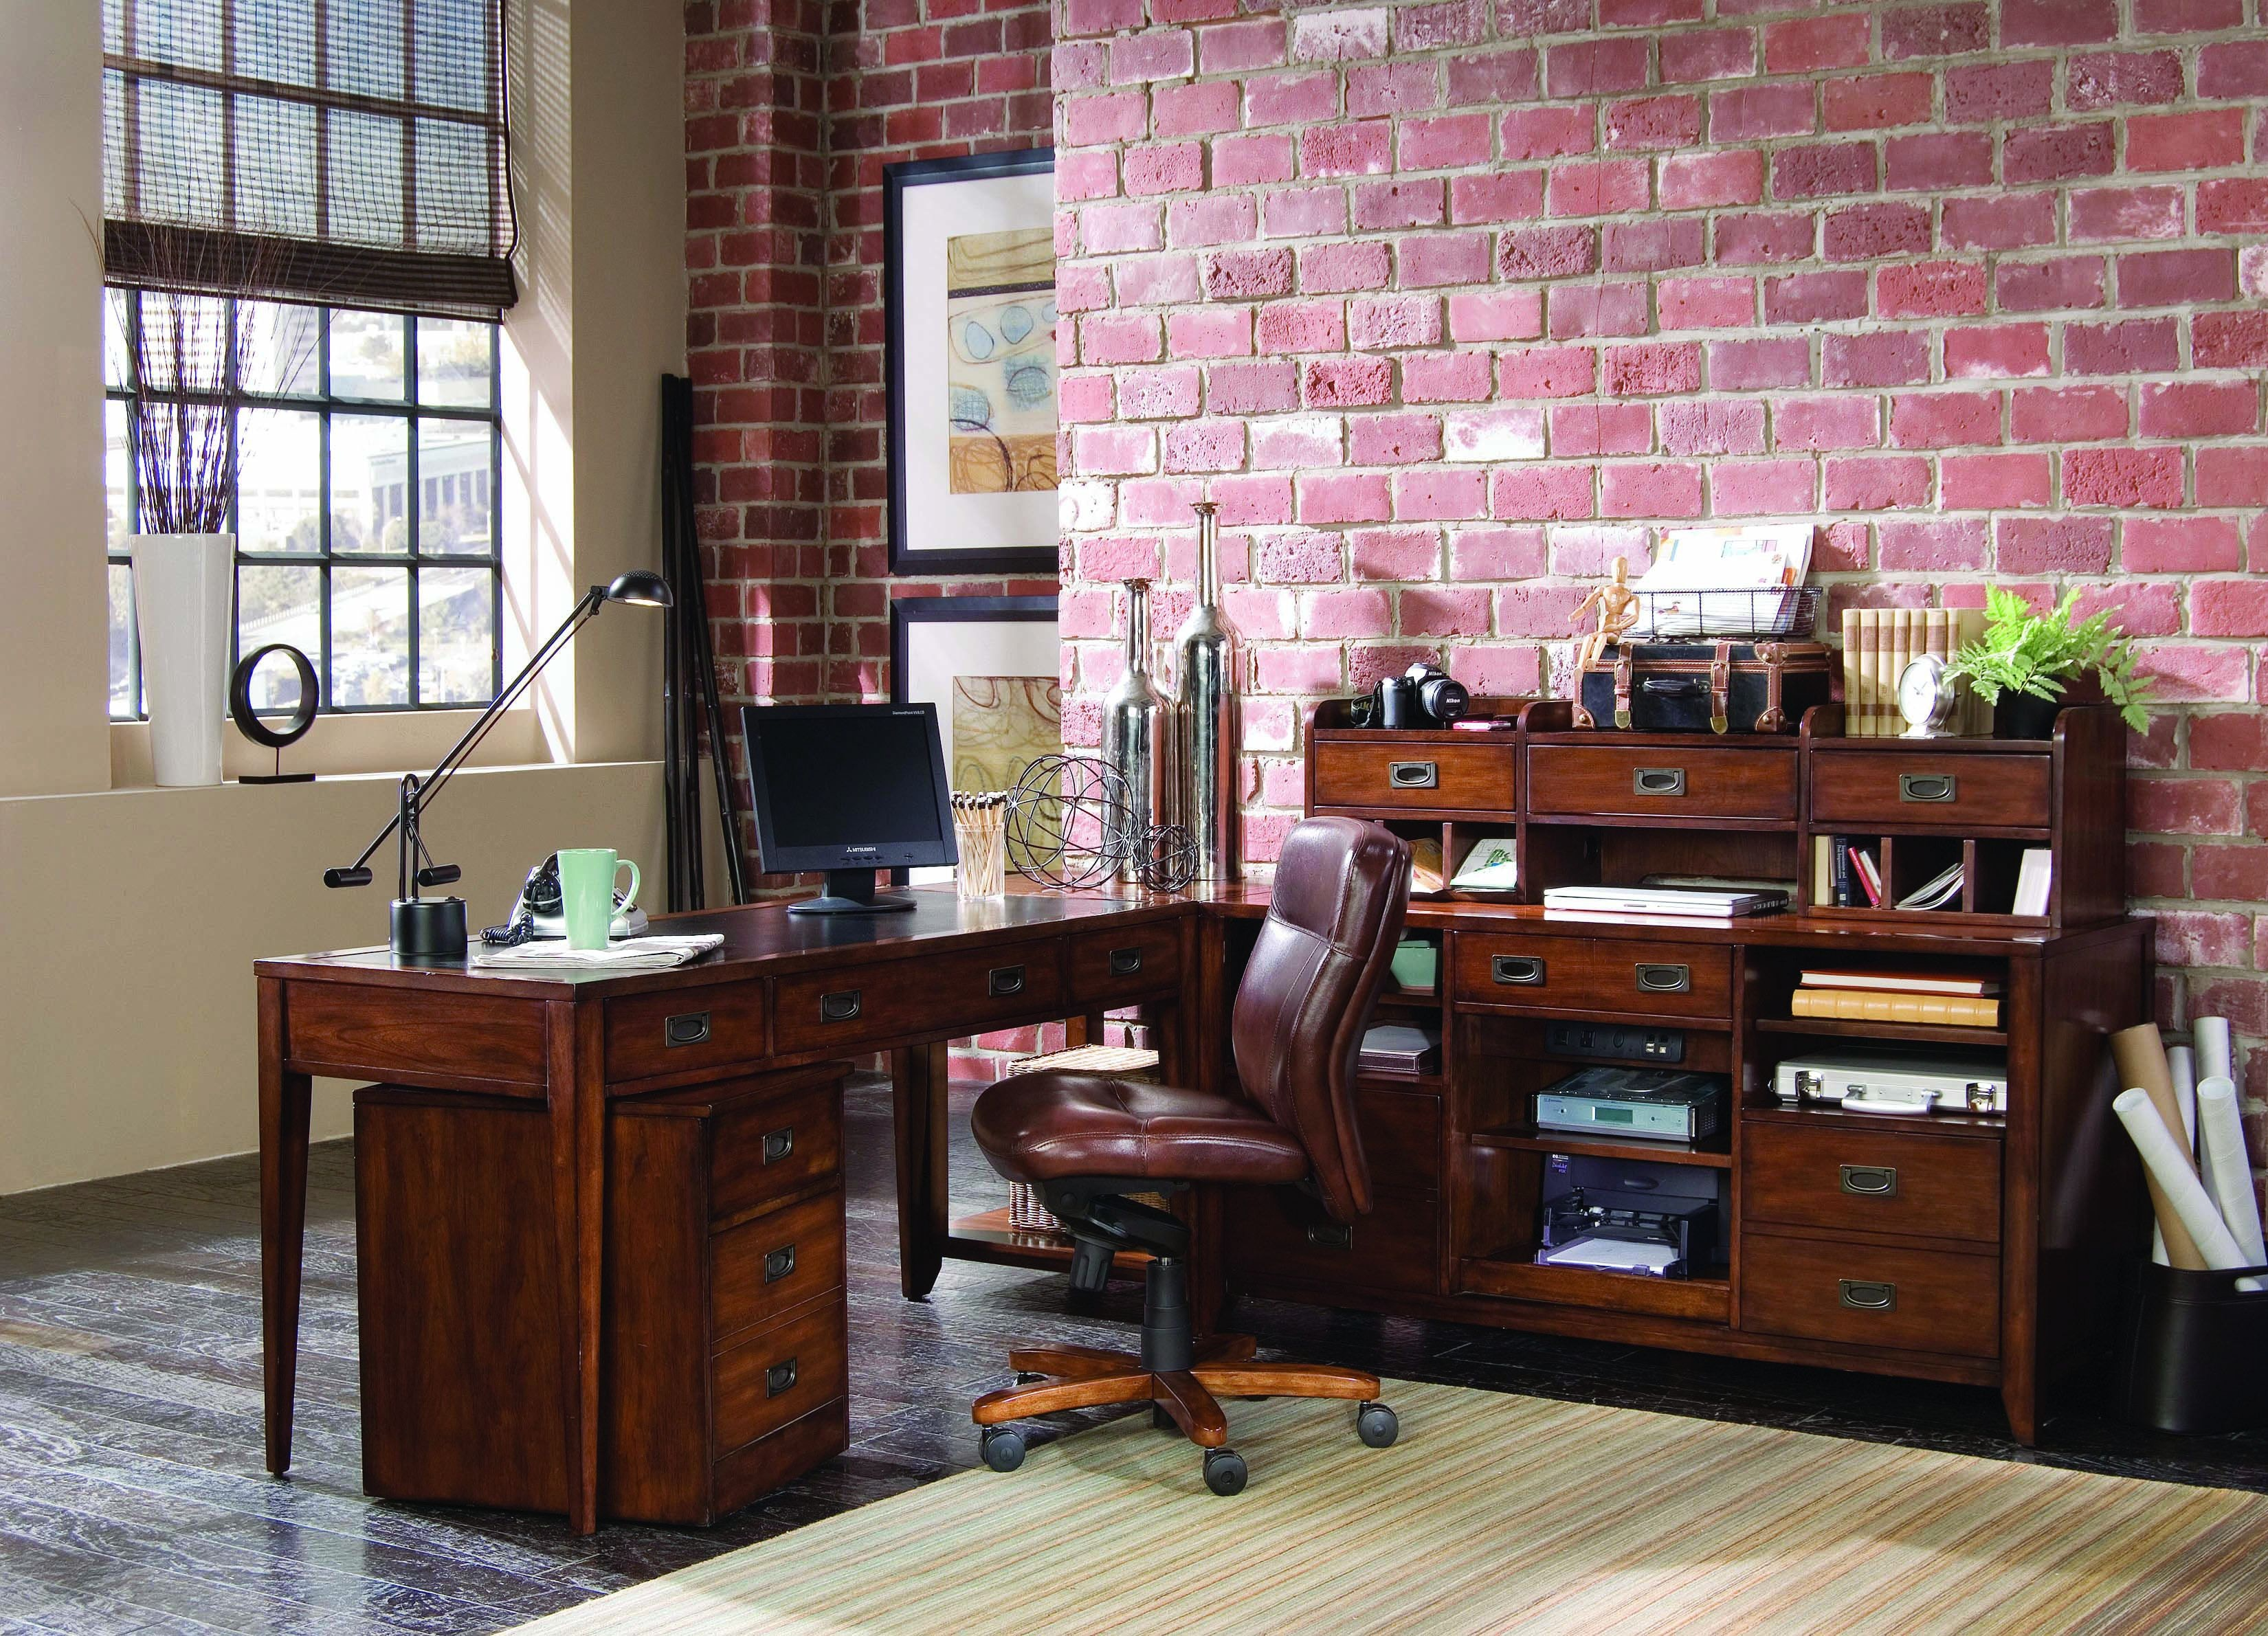 Hooker Furniture Home Office Office Wall System Danforth Modular Group